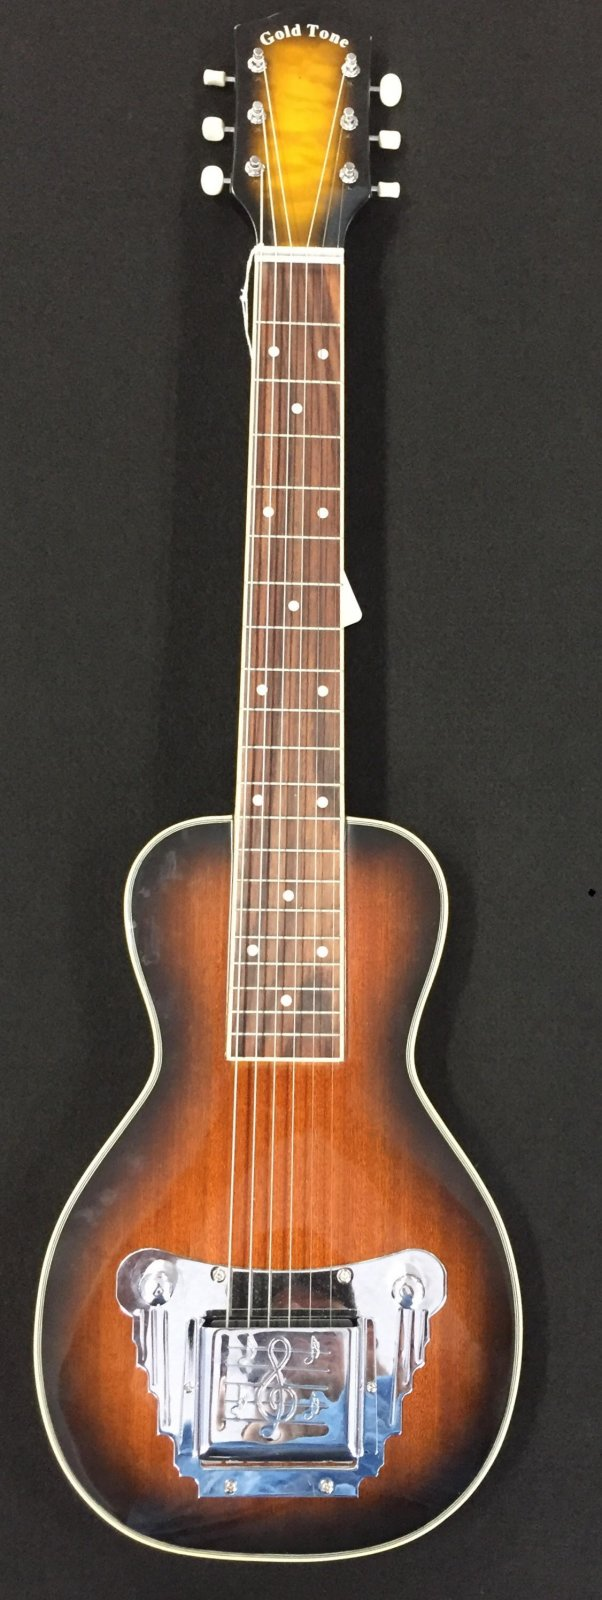 Gold Tone LS6 traditional lap steel guitar